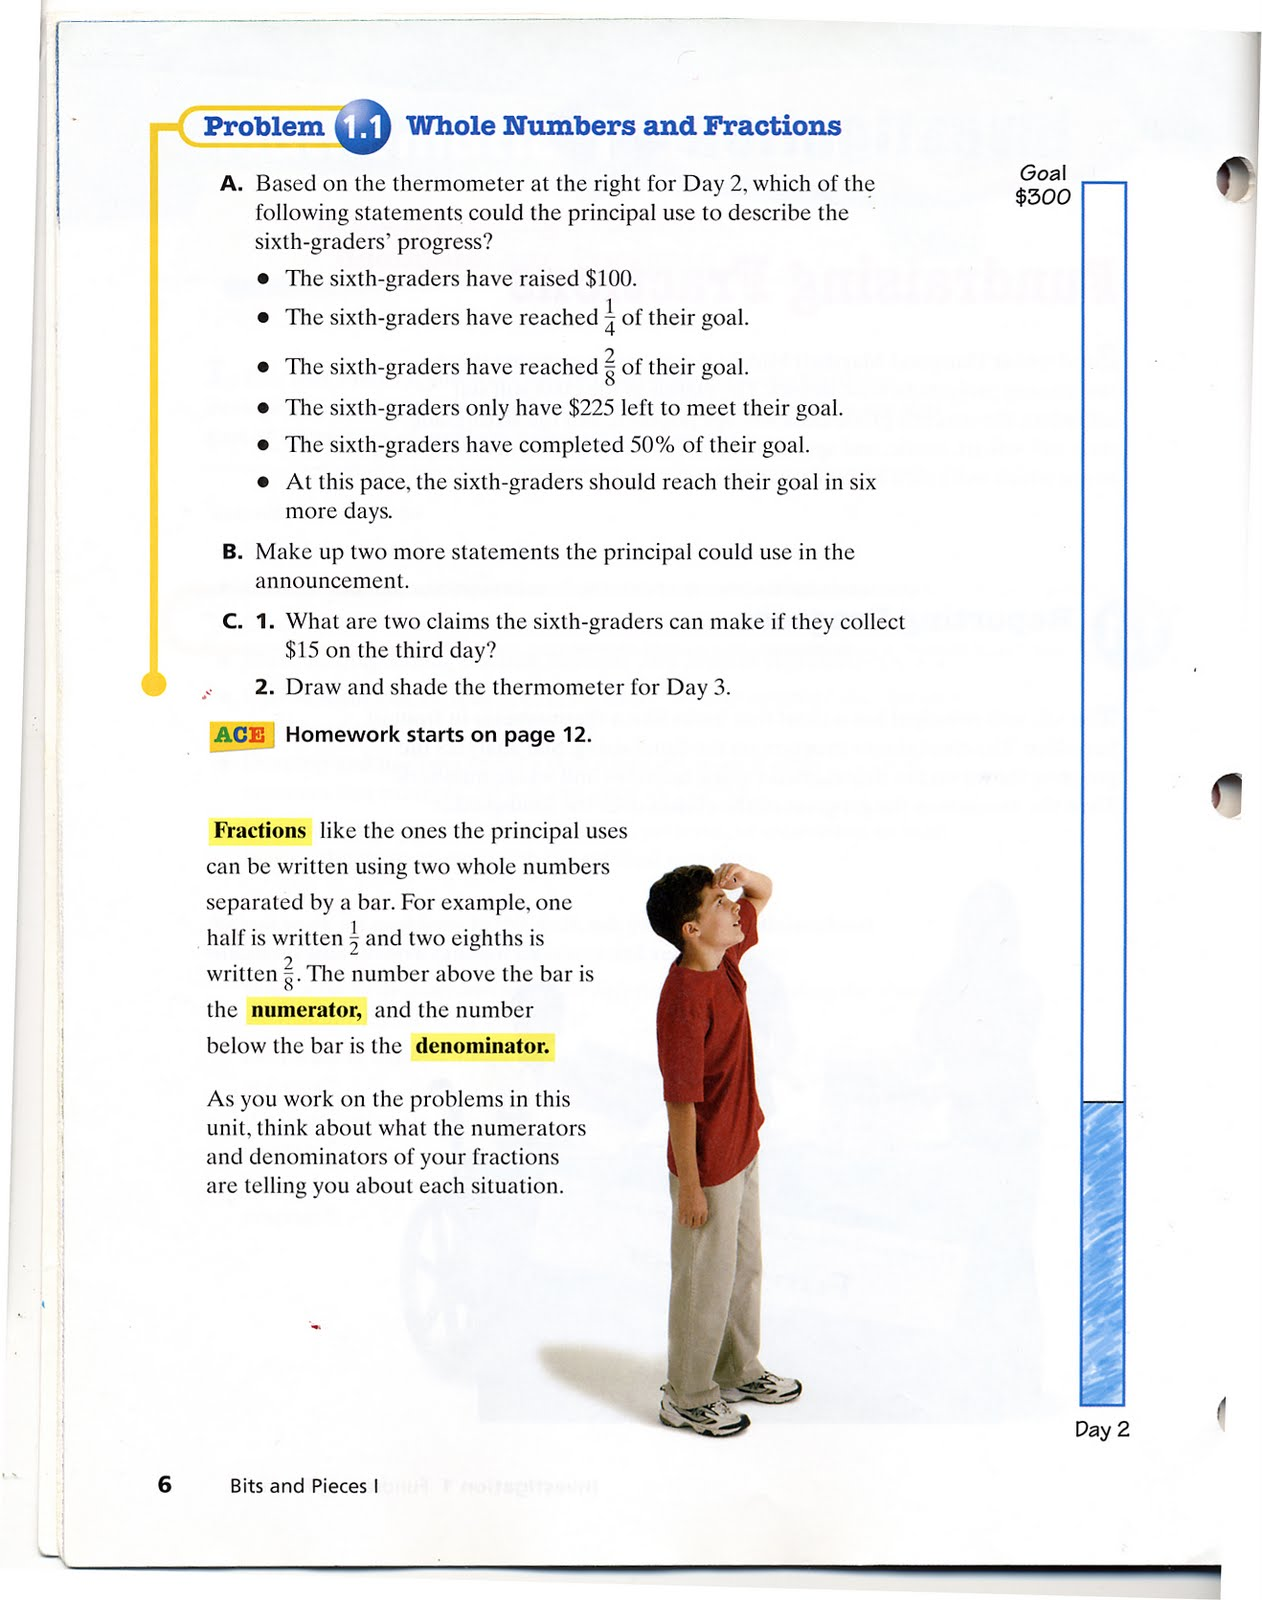 Essays On Teachers Buy University Essays Online Uk Pharmacy Writing A Narrative Essay Outline also University Of Florida Admission Essay Better Business Creating Letter Memo More Persuasive Report Writing  Satirical Essay